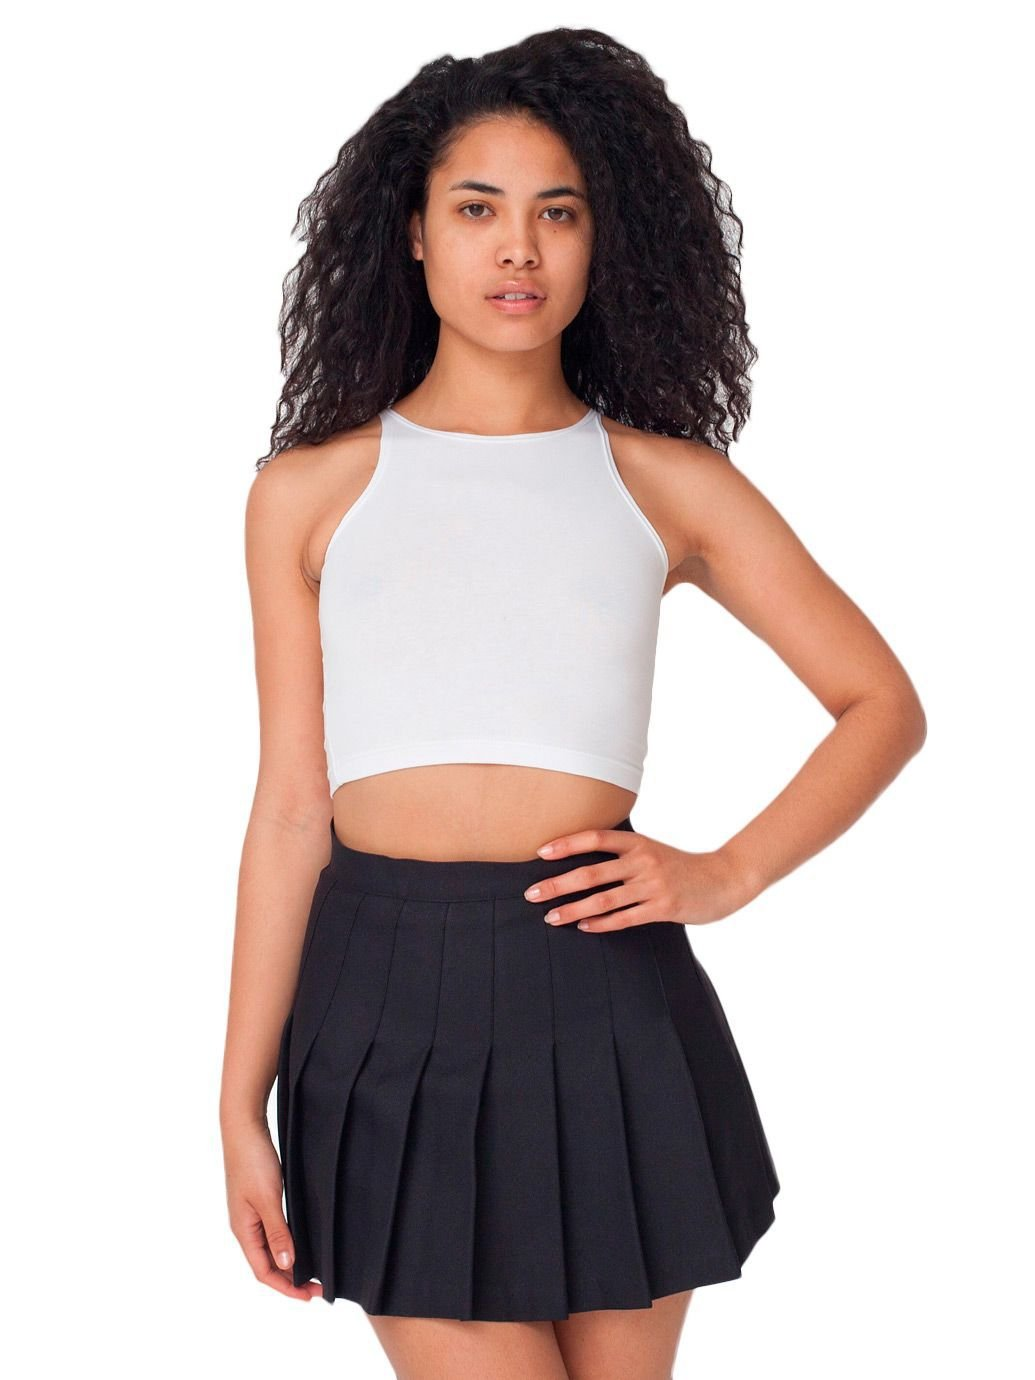 American Apparel Women's Tennis Skirt Size M Black by American Apparel